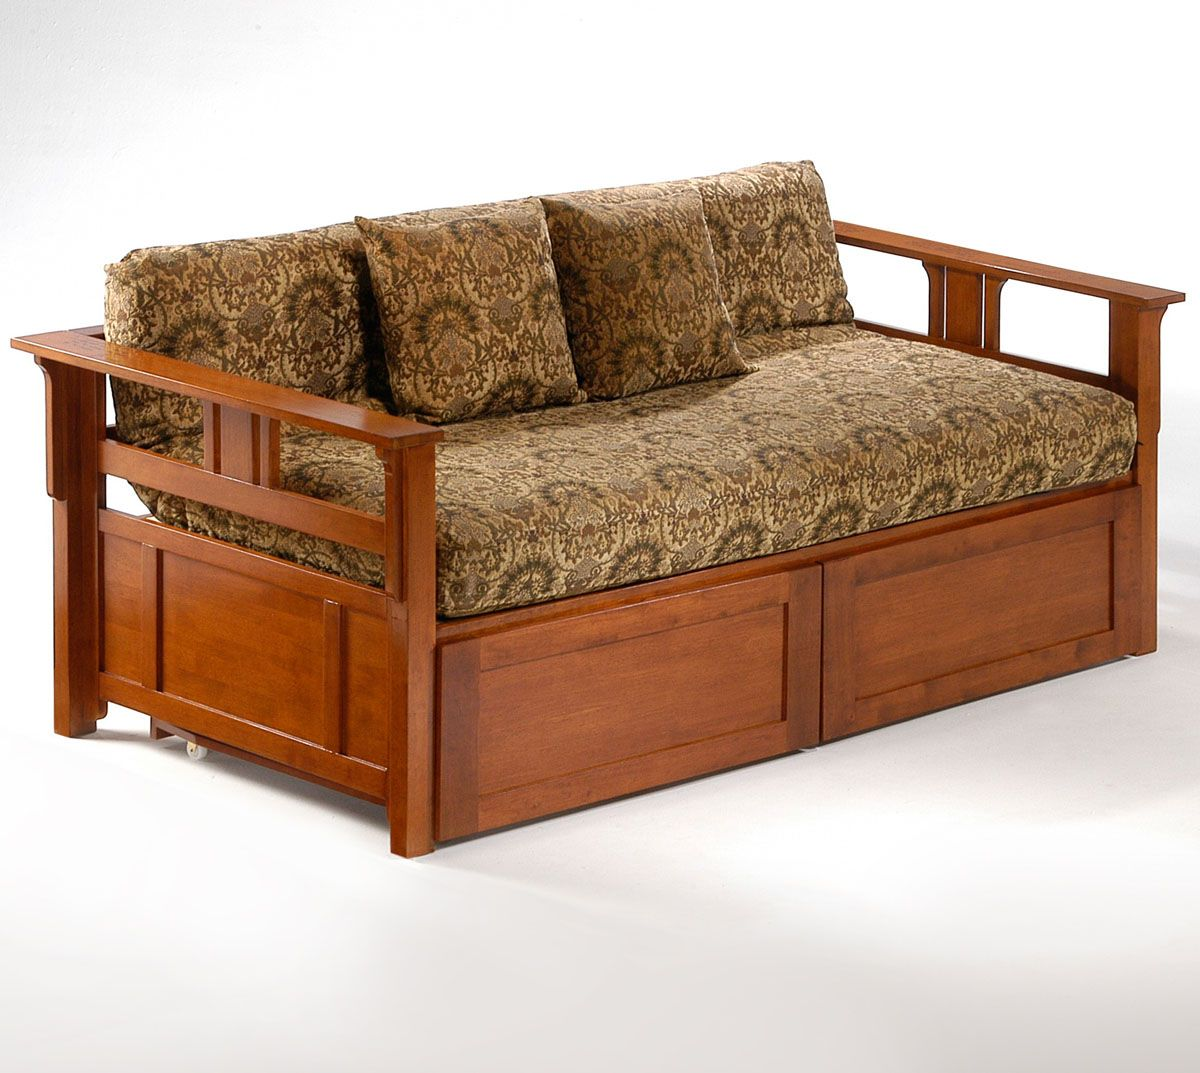 Daybed teddy roosevelt daybed 809 00 night day for Furniture and beds